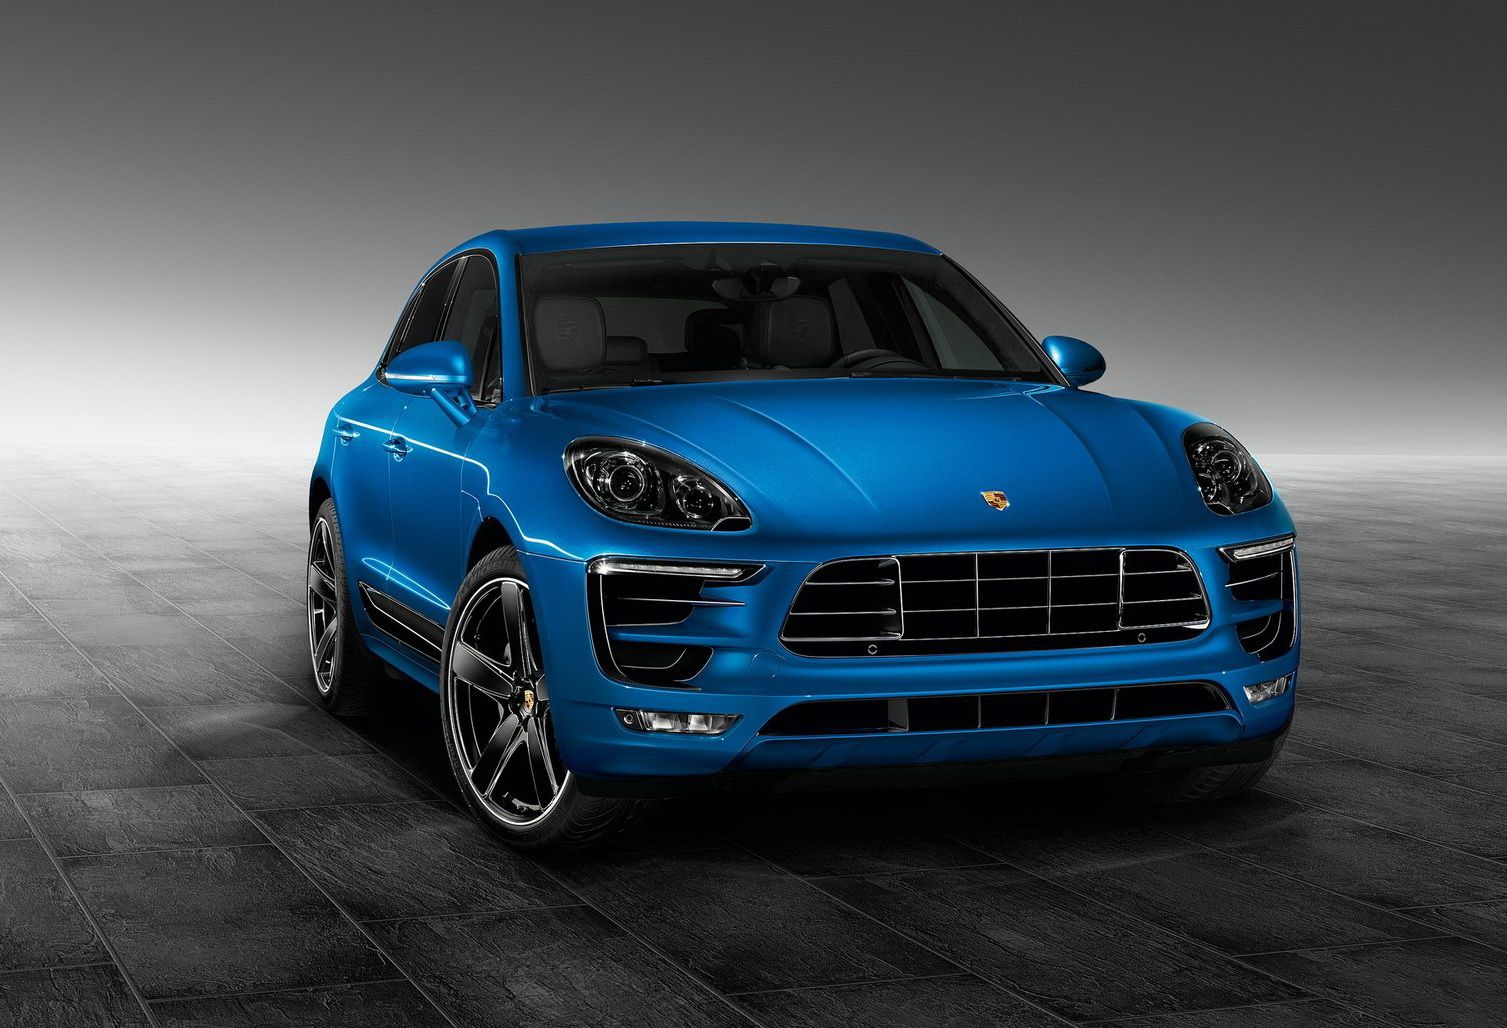 The porsche macan german manufacturer porsche s latest prodigy is a much anticipated compact crossover suv